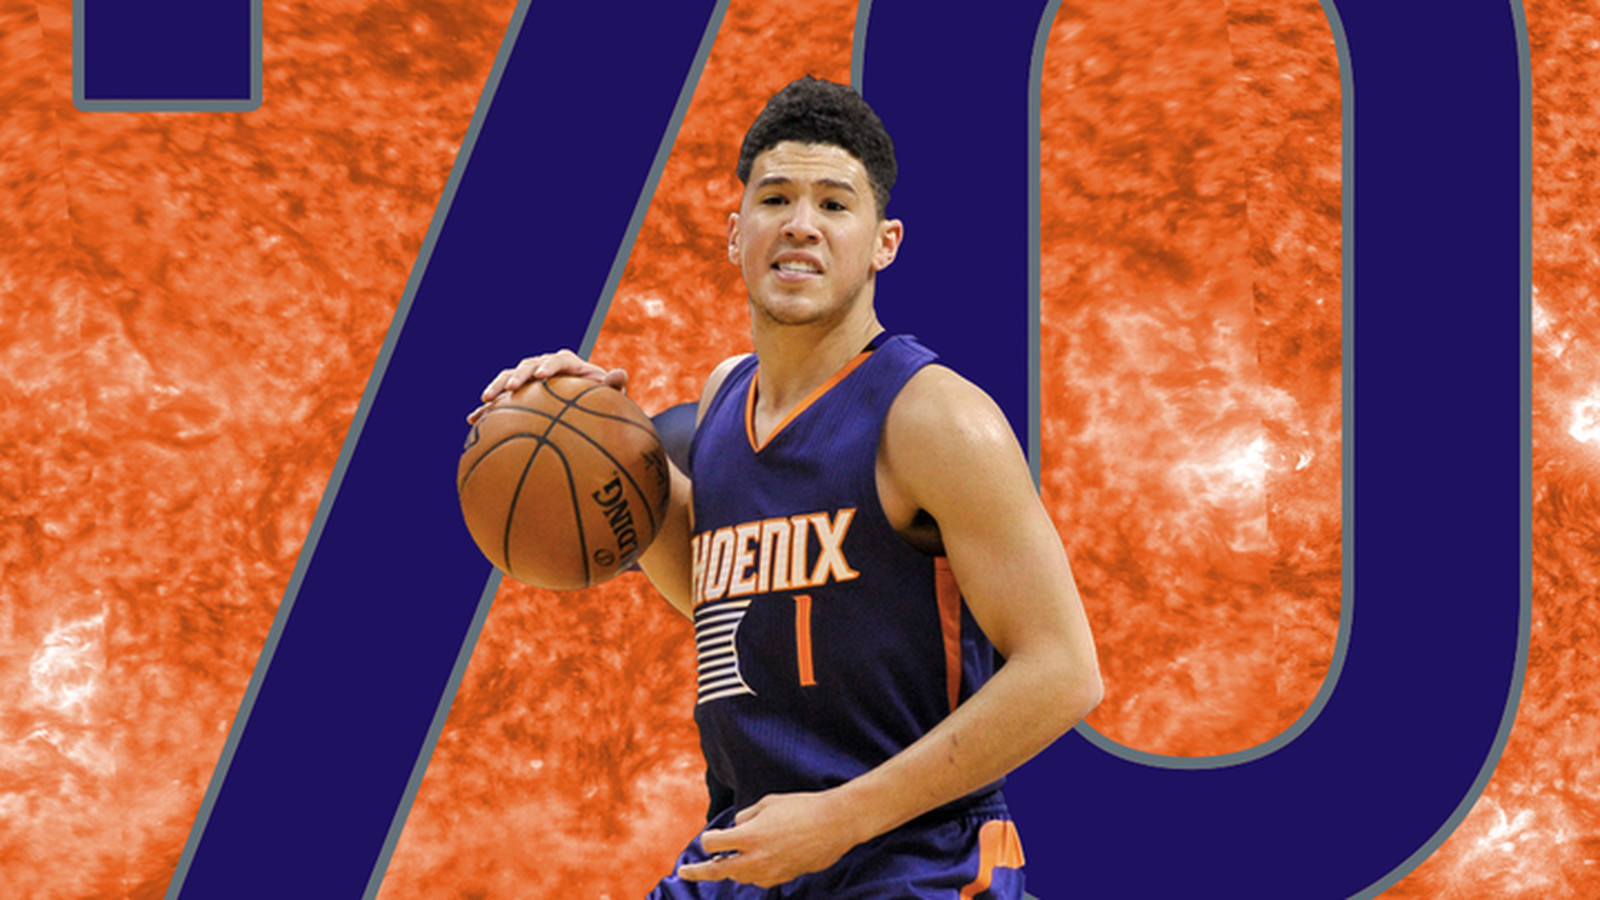 Devin Booker Becomes 6th Player To Score 70 Points In A